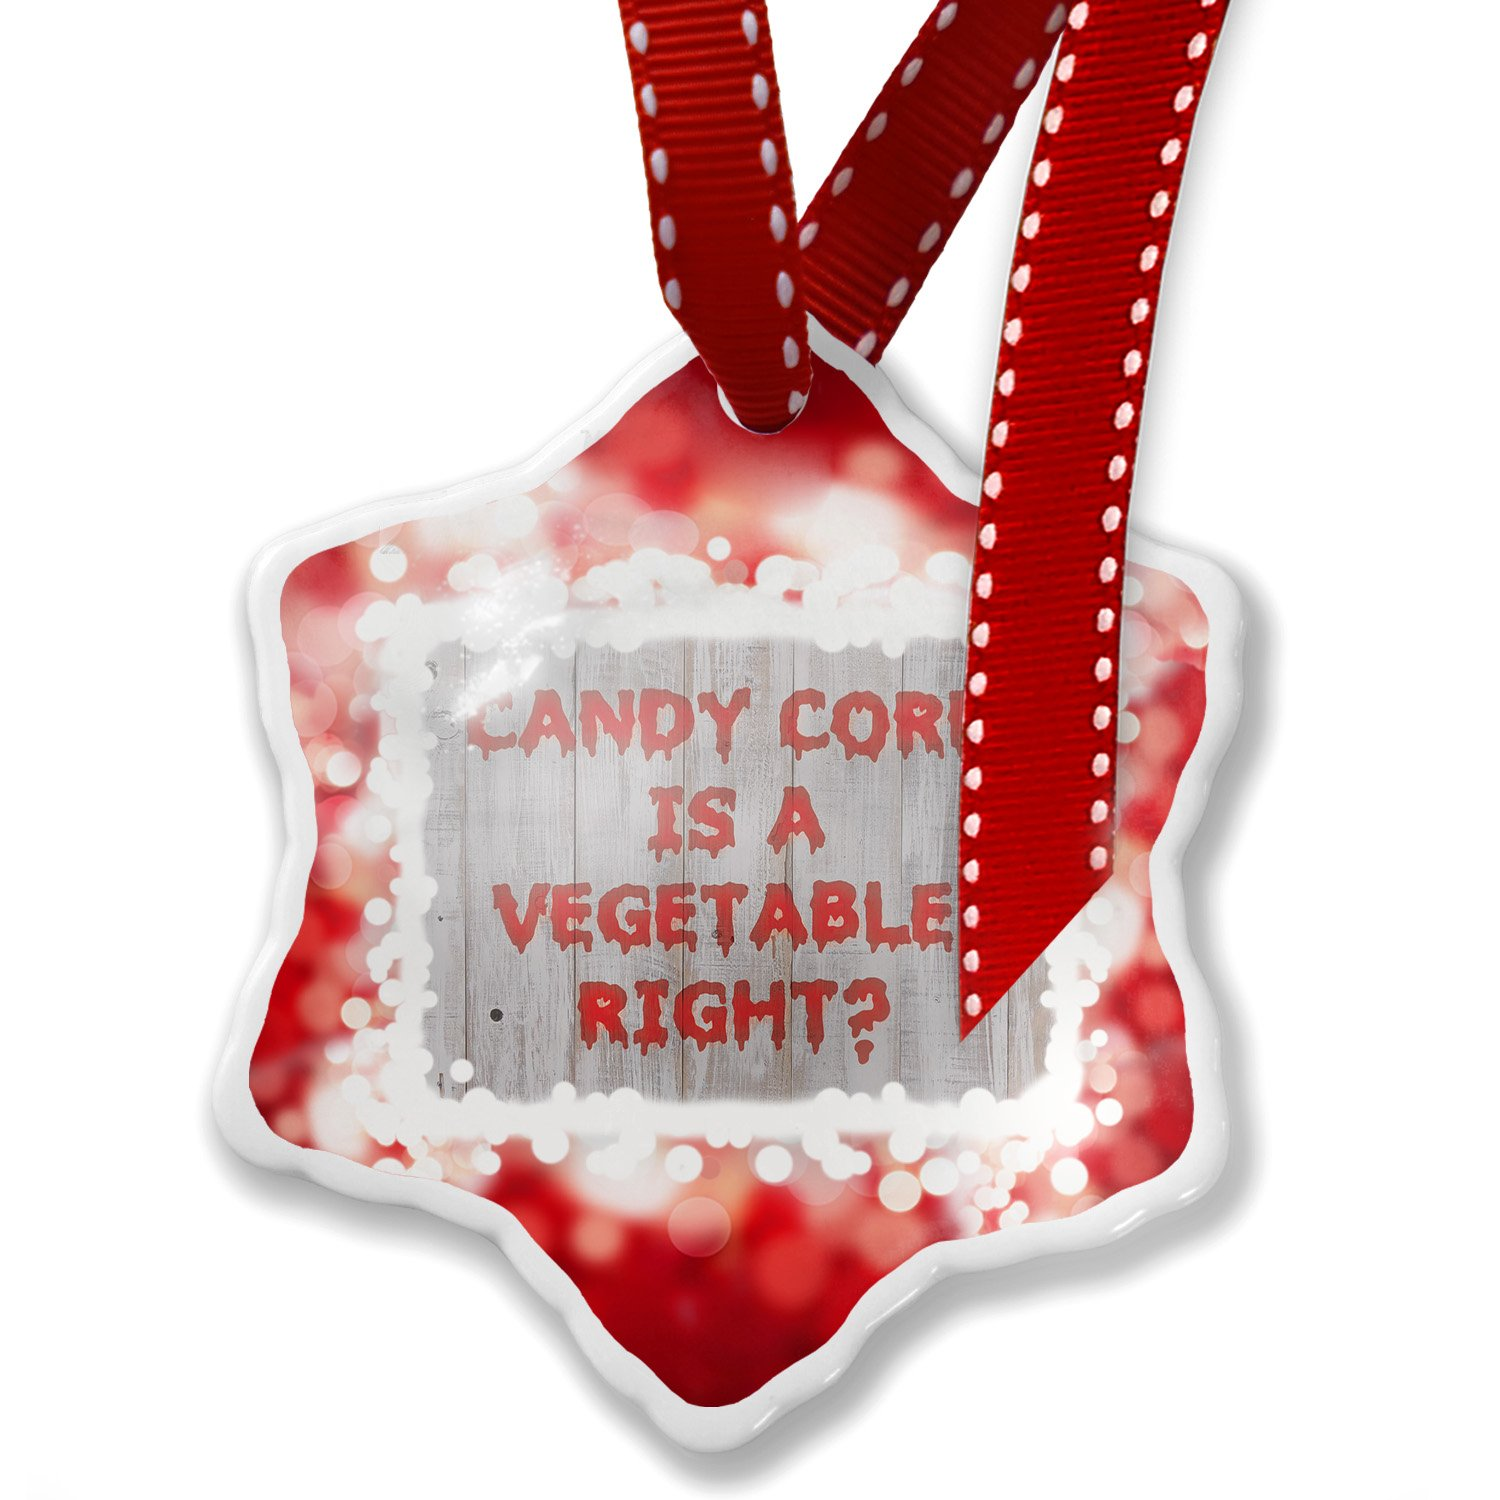 Christmas Ornament Candy Corn is a Vegetable, Right? Halloween Bloody Wall, red - Neonblond